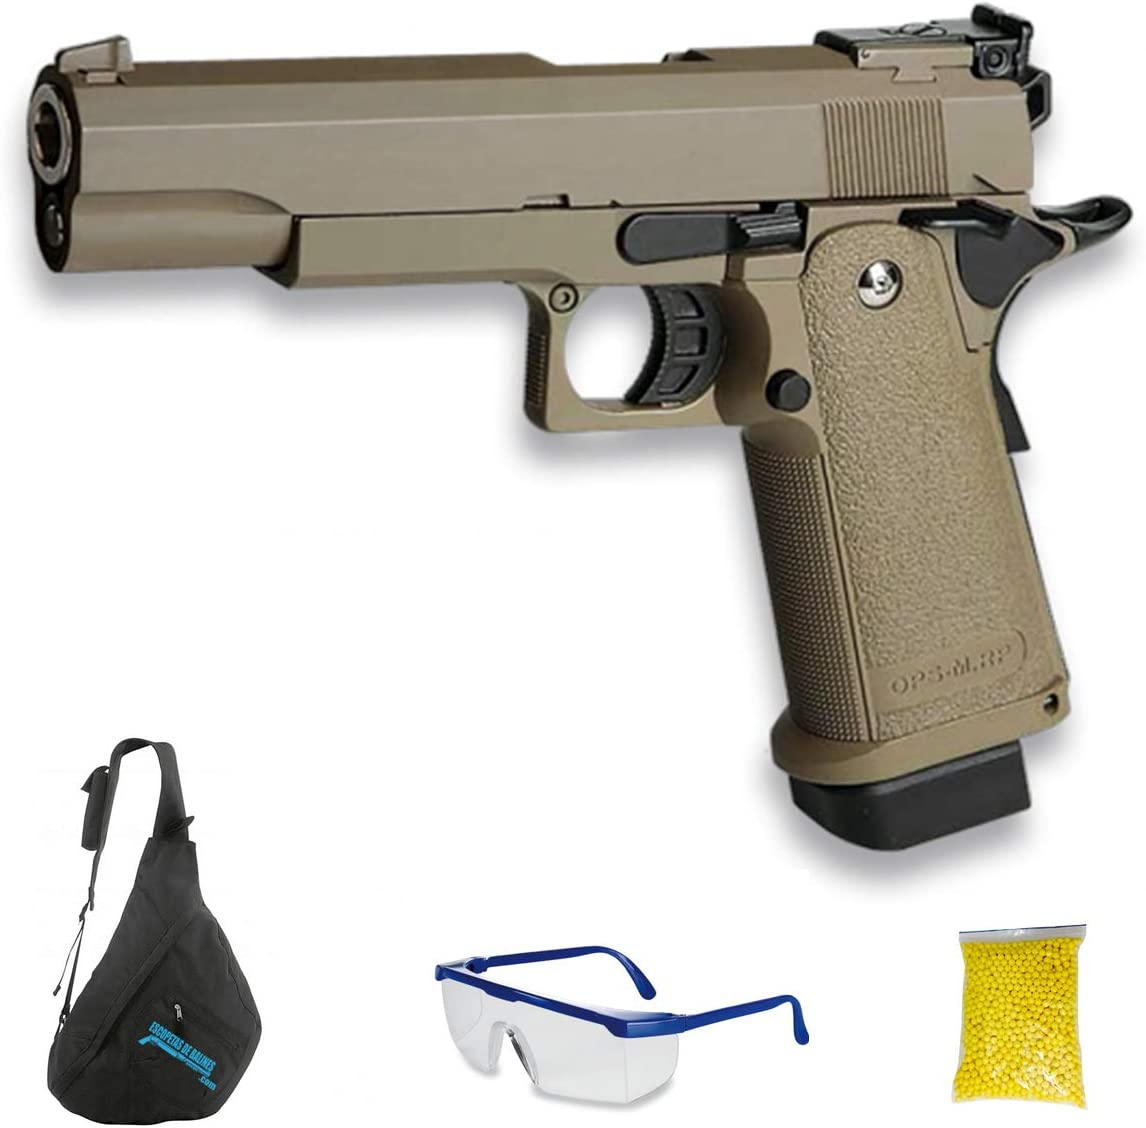 Golden Eagle GE 3304 (6mm blowback- Pistola de Airsoft Calibre 6mm (Arma Aire Suave de Bolas de plástico o PVC). Sistema: Gas. <3,5J